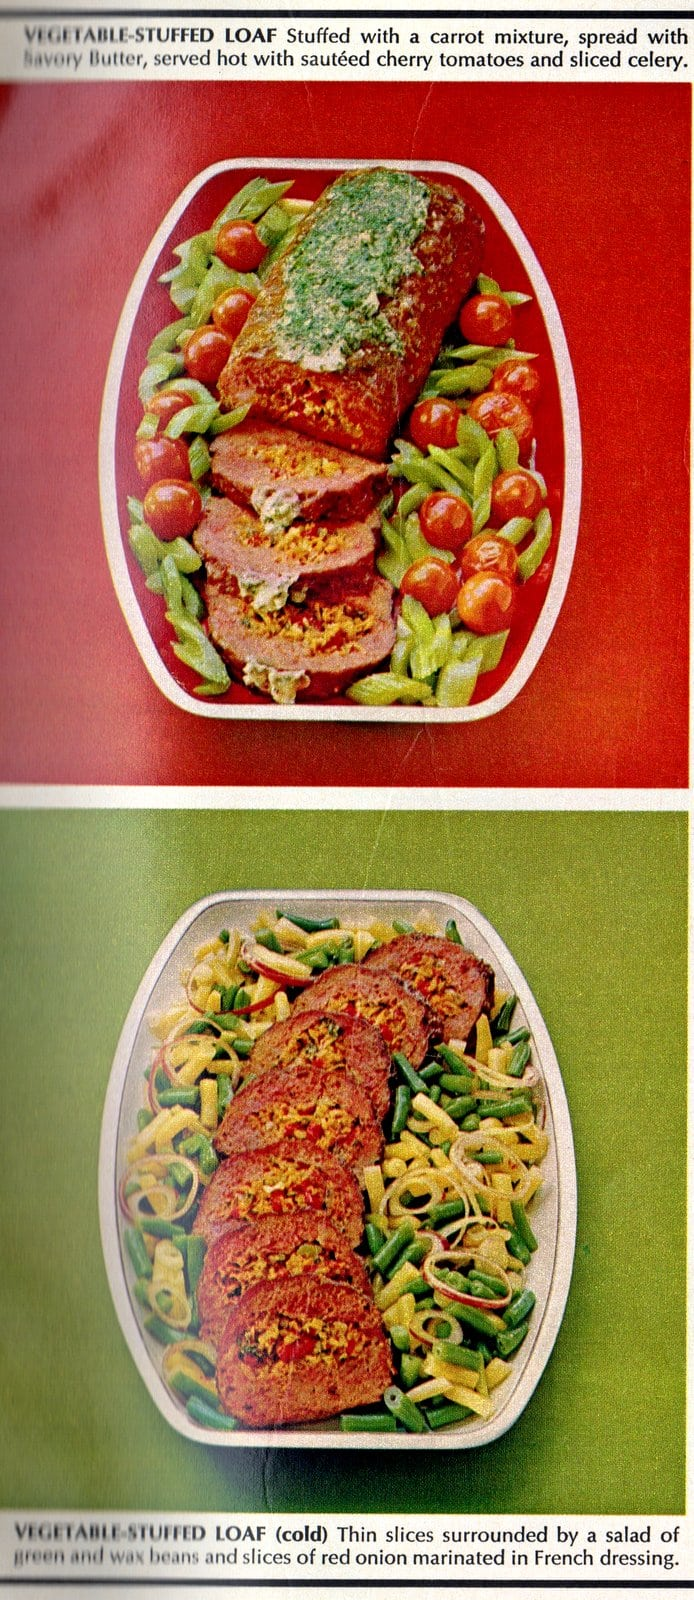 Vegetable-stuffed meatloaf